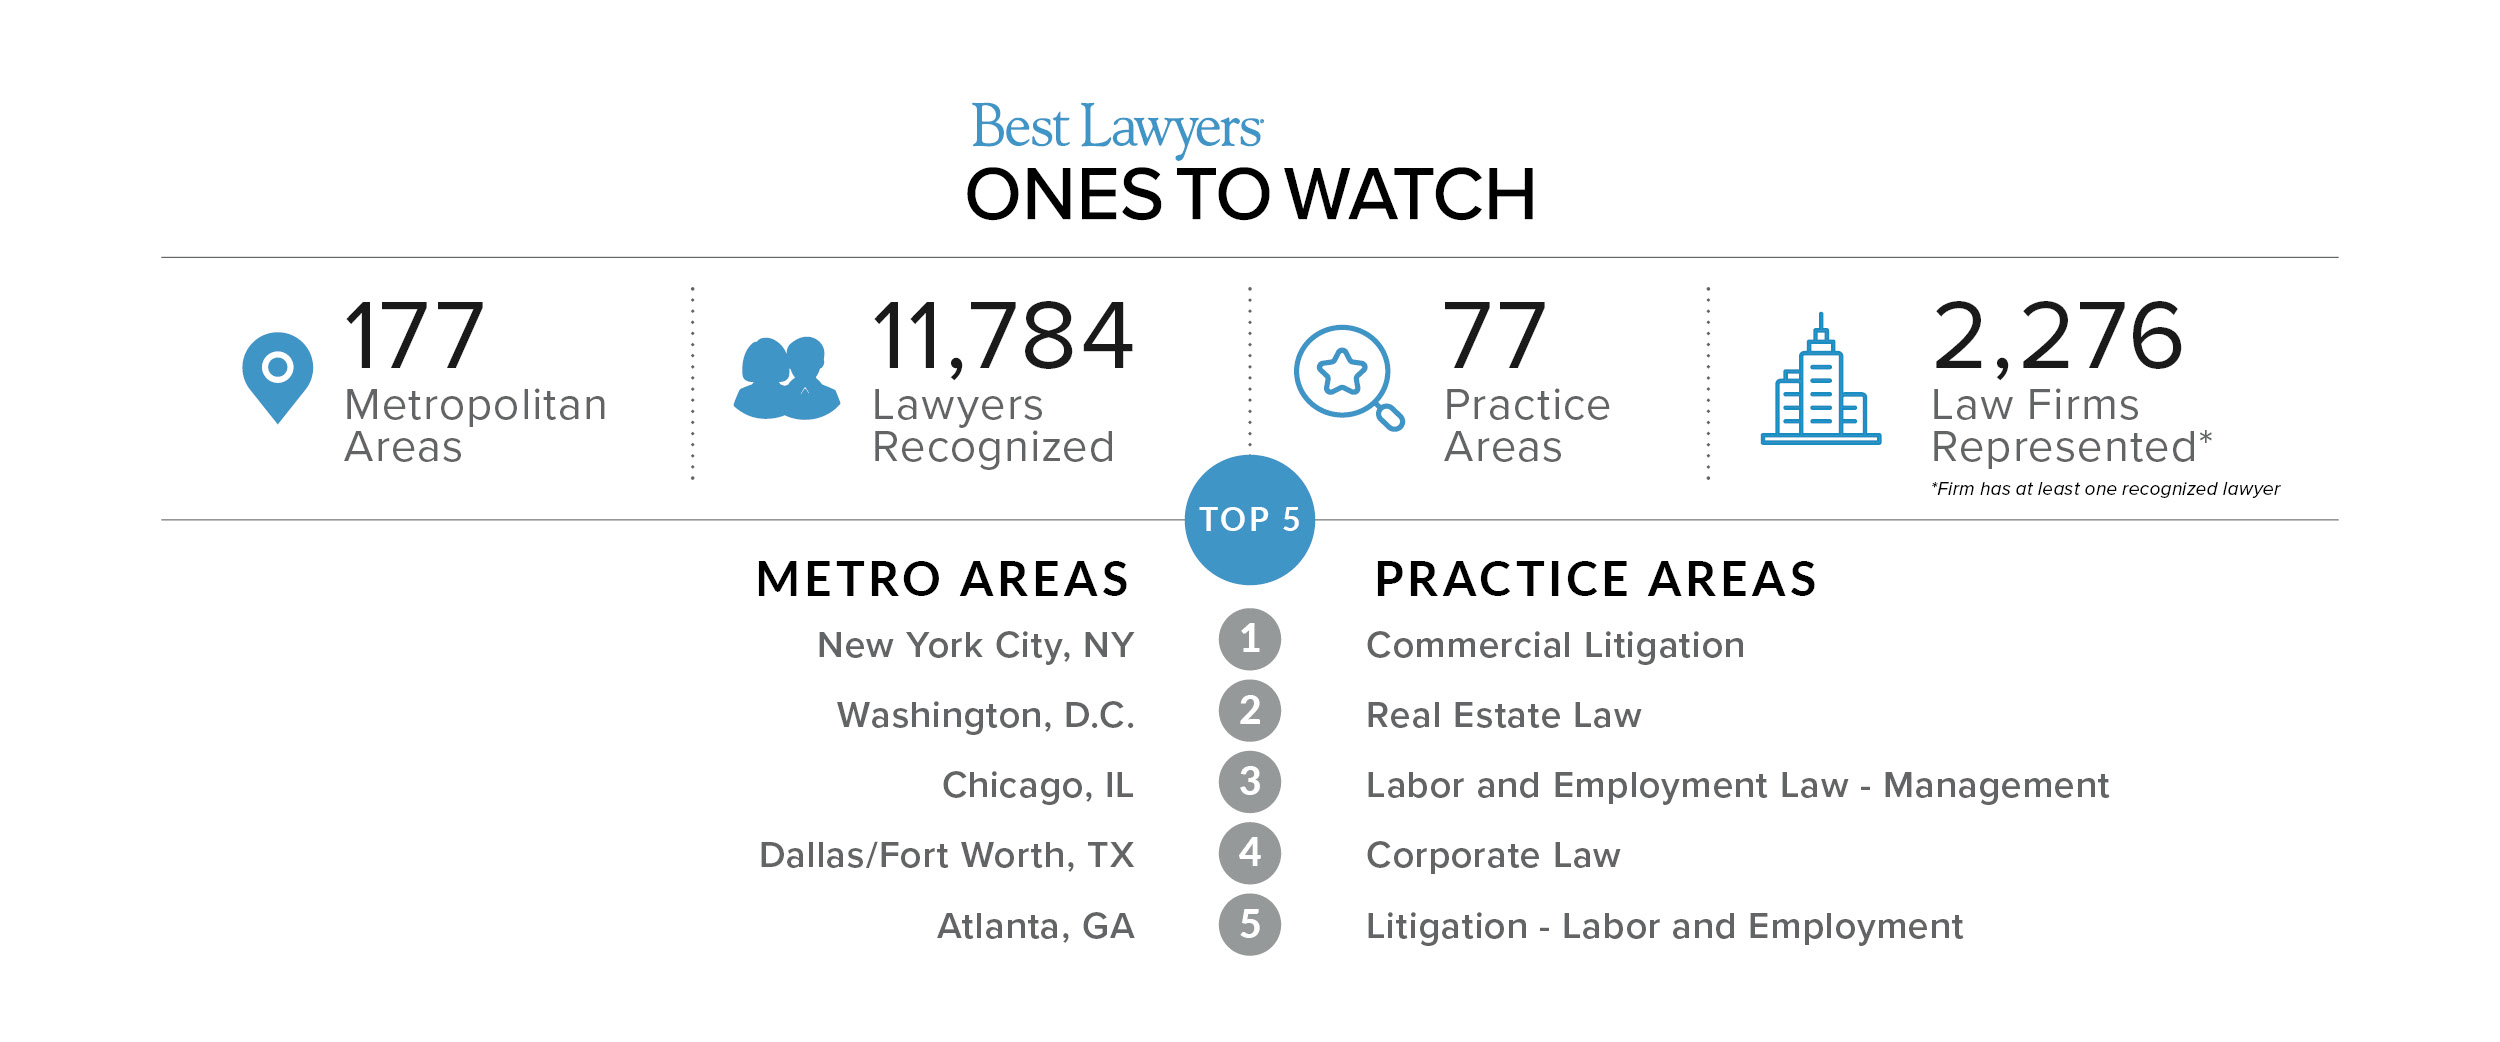 Best Lawyers: Ones to Watch First Edition Stats